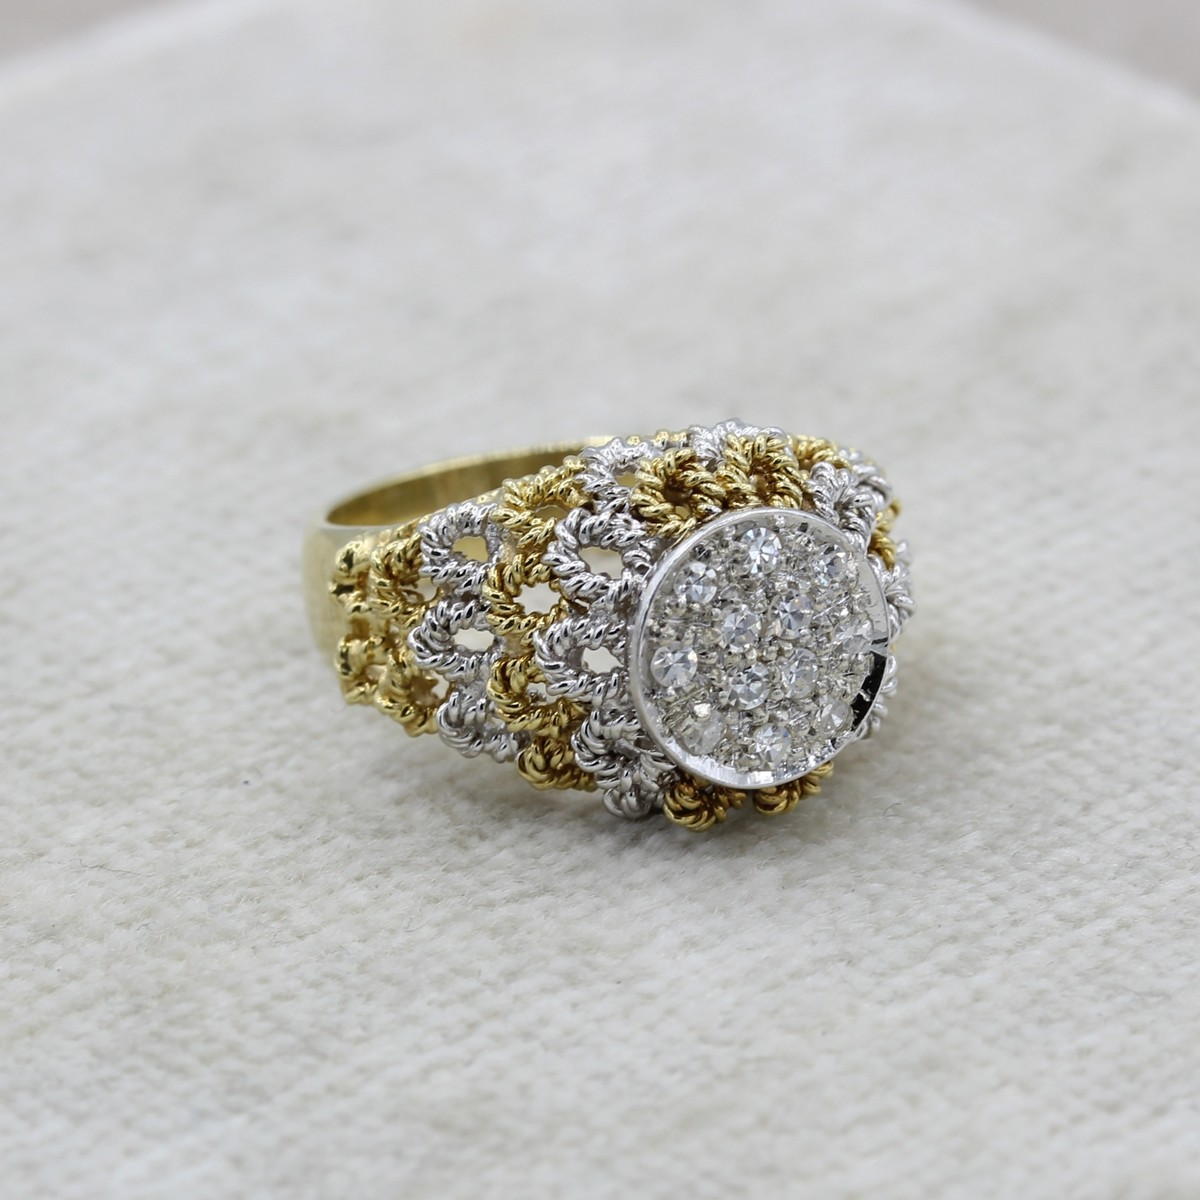 VINTAGE 18K YELLOW AND WHITE GOLD CLUSTER RING WITH OPEN PETALS